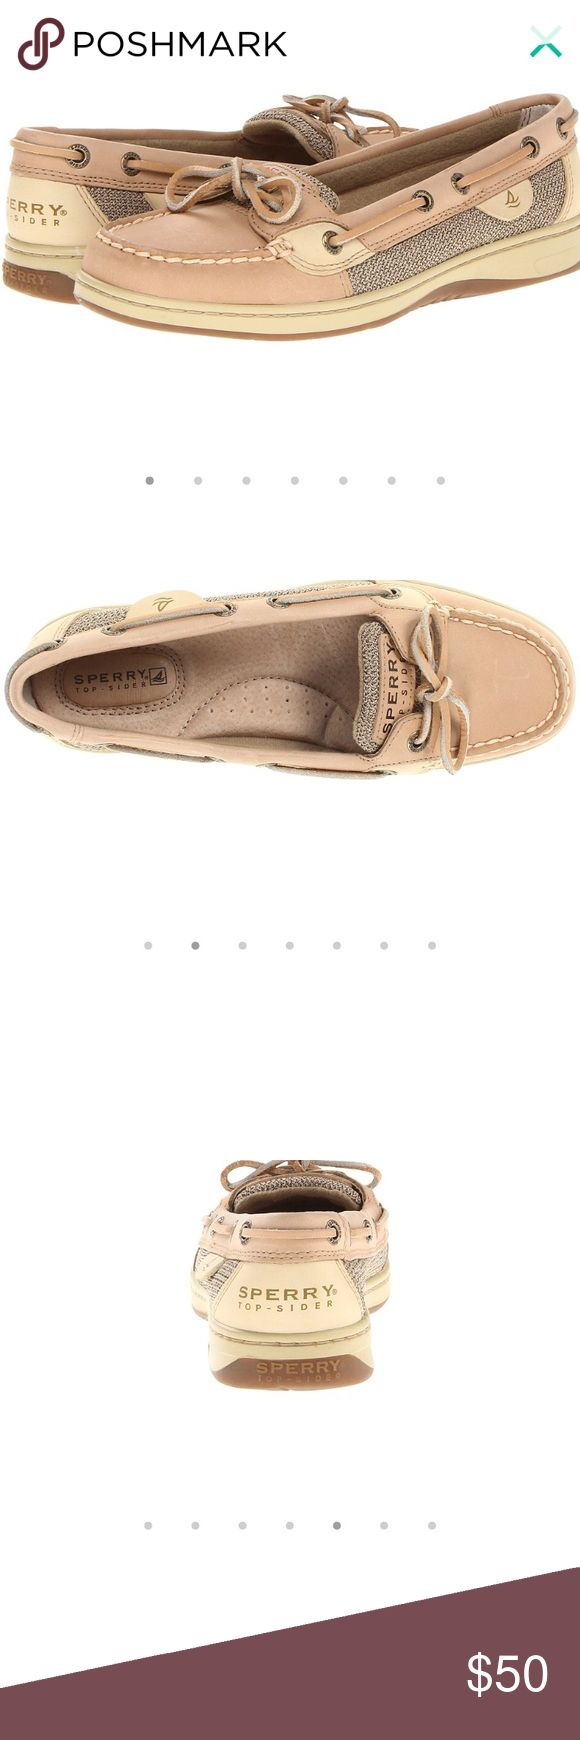 Sperry Angelfish Topsider women's SKU: #8979049 Used, size 8M, good condition, hardly worn, just sitting at the bottom of a closet for a while.  The Angelfish captures classic boat shoe style in a feminine design. Stain and water-resistant leather upper for durable and lasting wear. Genuine hand-sewn construction for durable comfort. Features unique textile patterns on side panels and tongue. Sperry Top-Sider Shoes